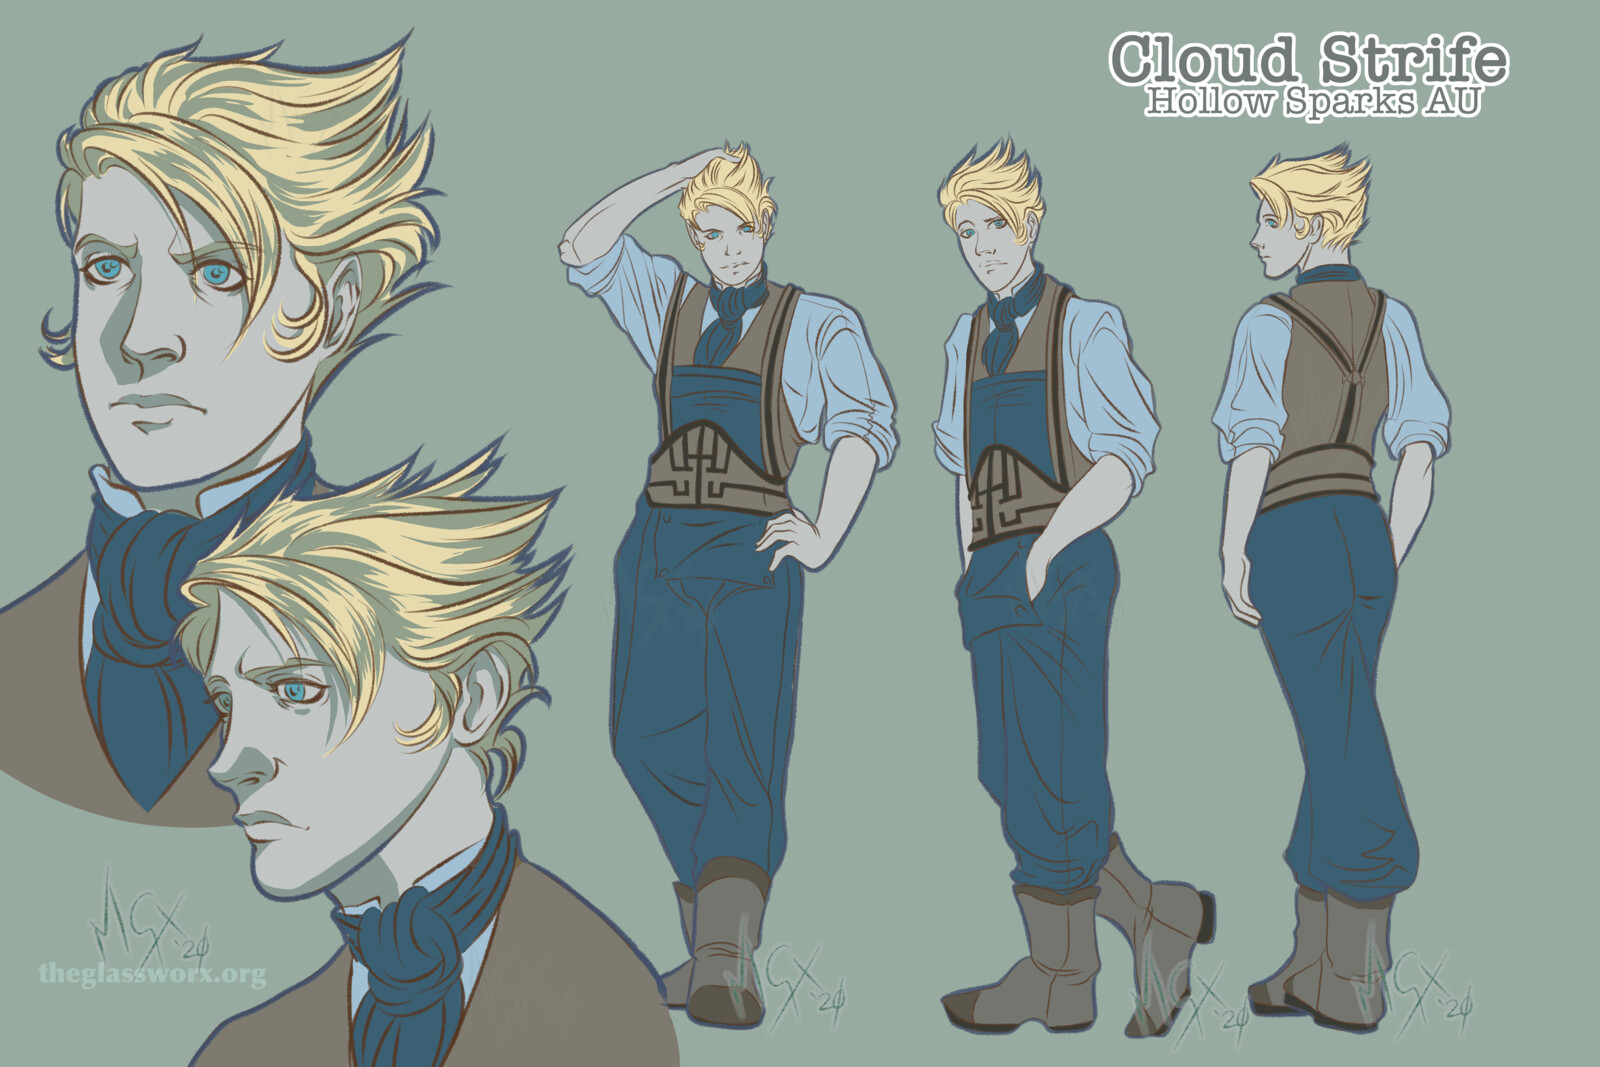 Fan Art: Cloud Strife - Hollow Sparks AU - Final Fantasy VII: Remake